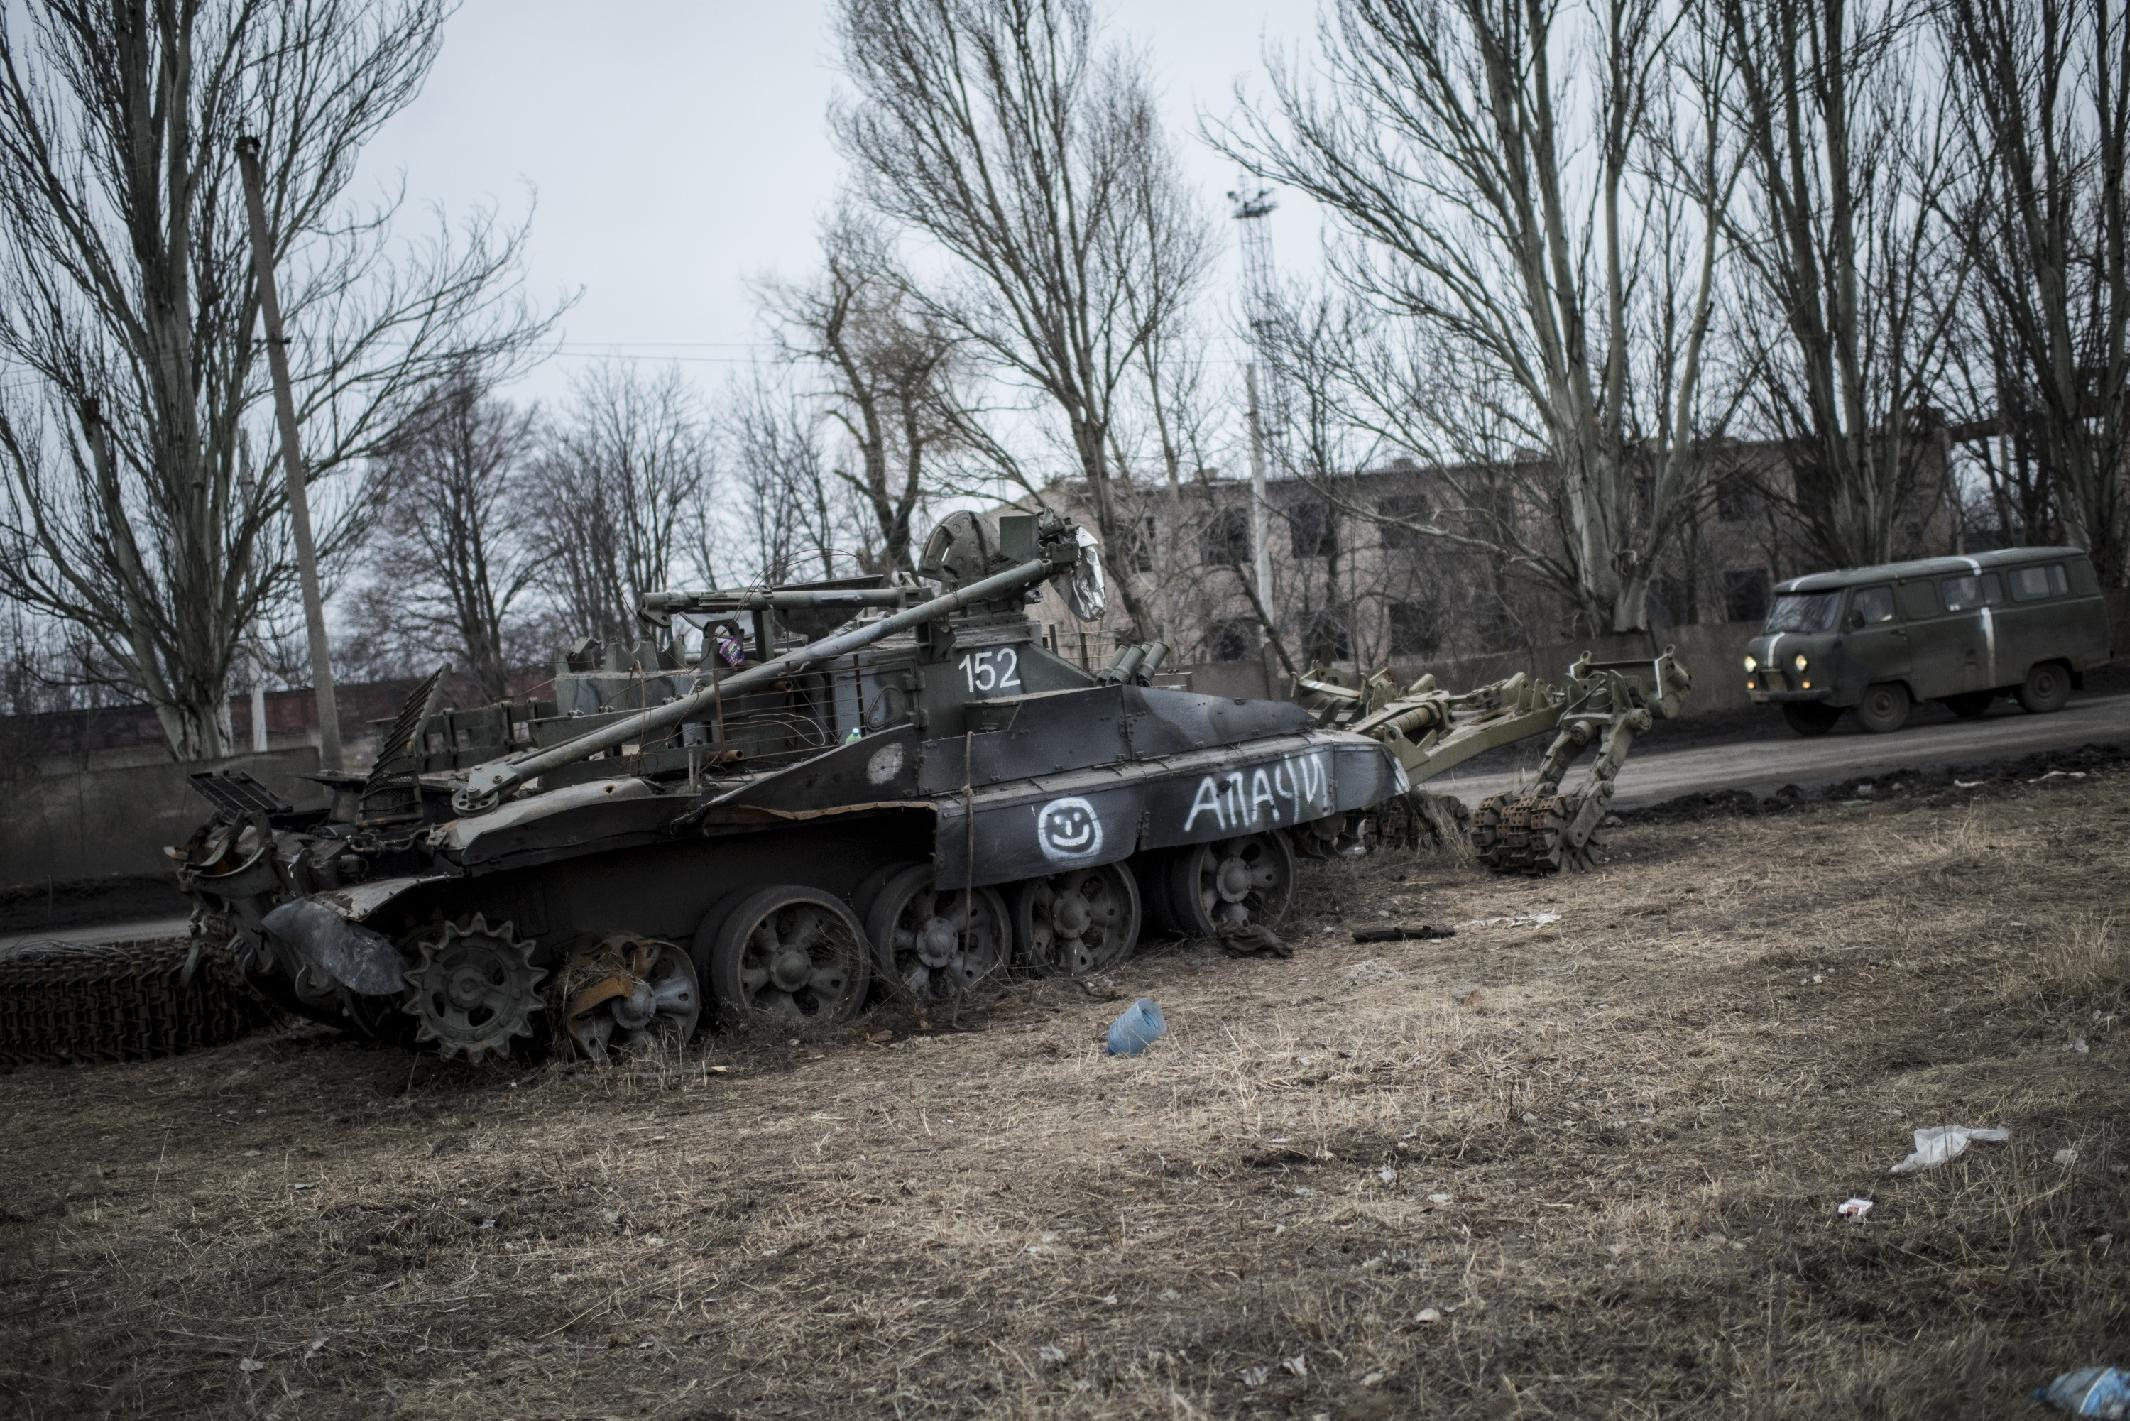 US official: Obama still weighing sending arms to Ukraine